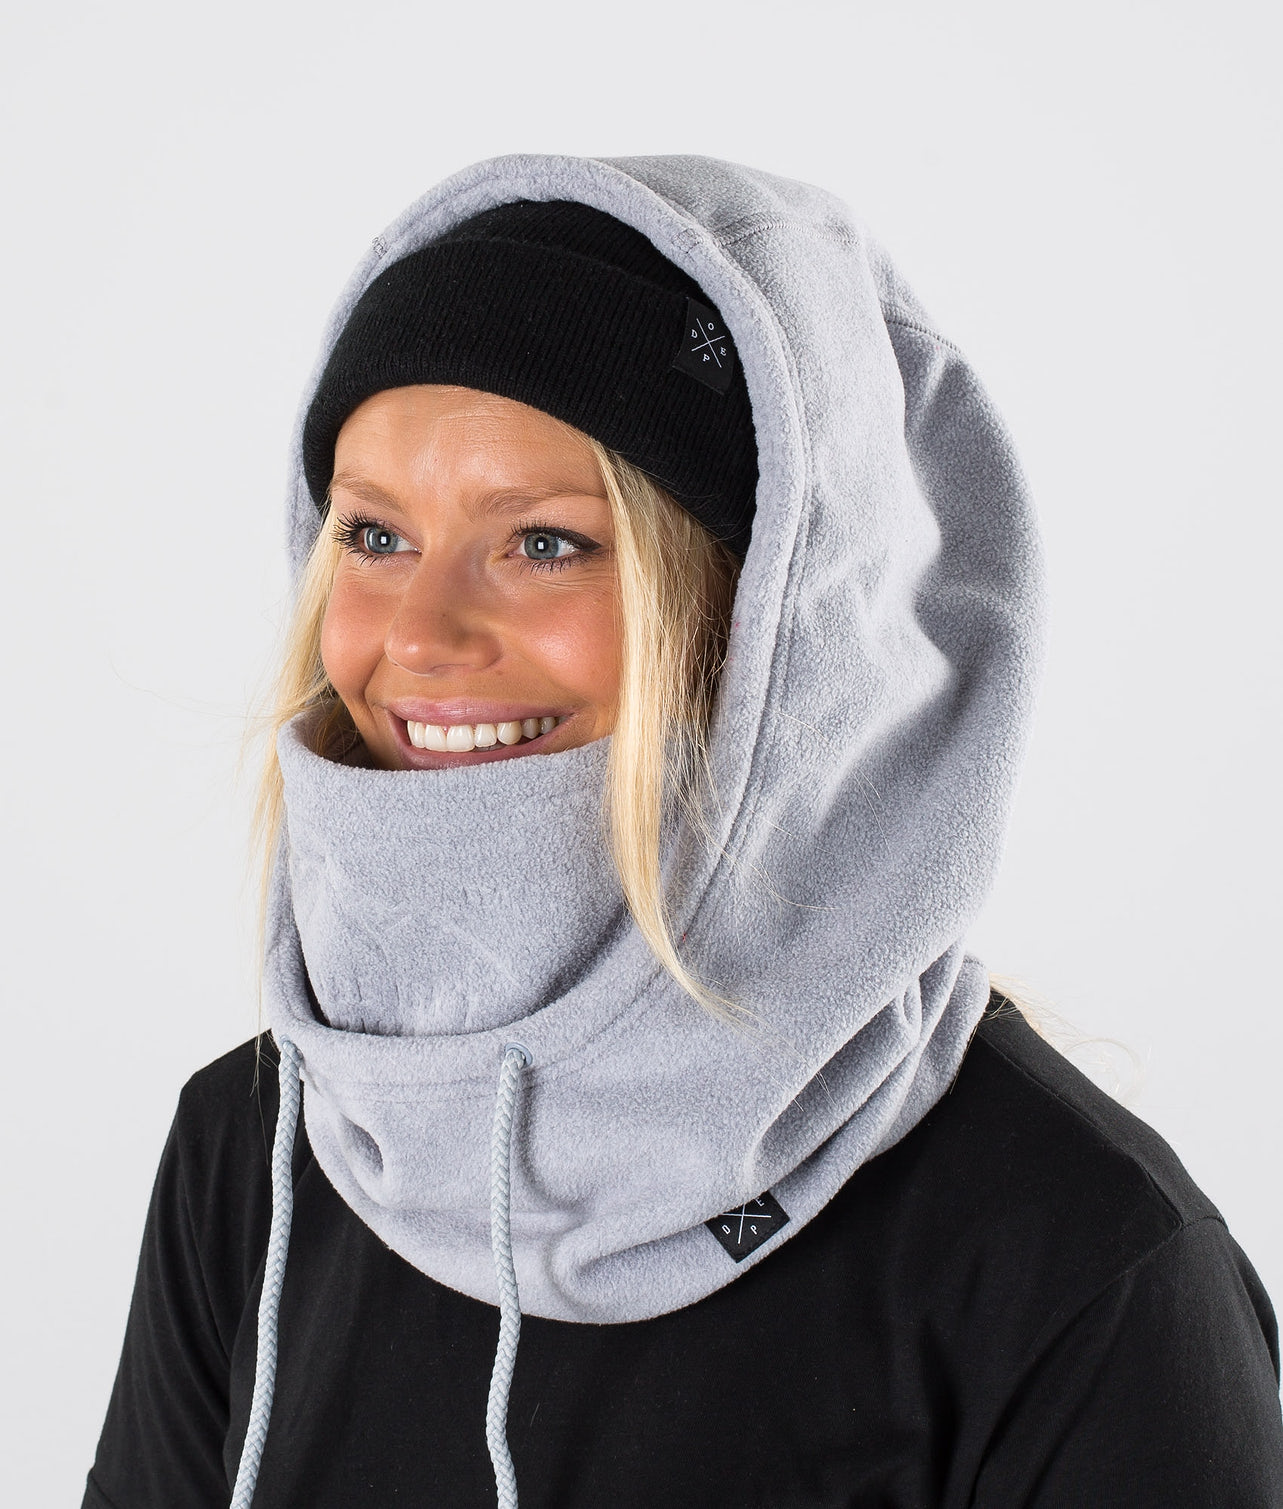 Buy Cozy Hood Facemask from Dope at Ridestore.com - Always free shipping, free returns and 30 days money back guarantee